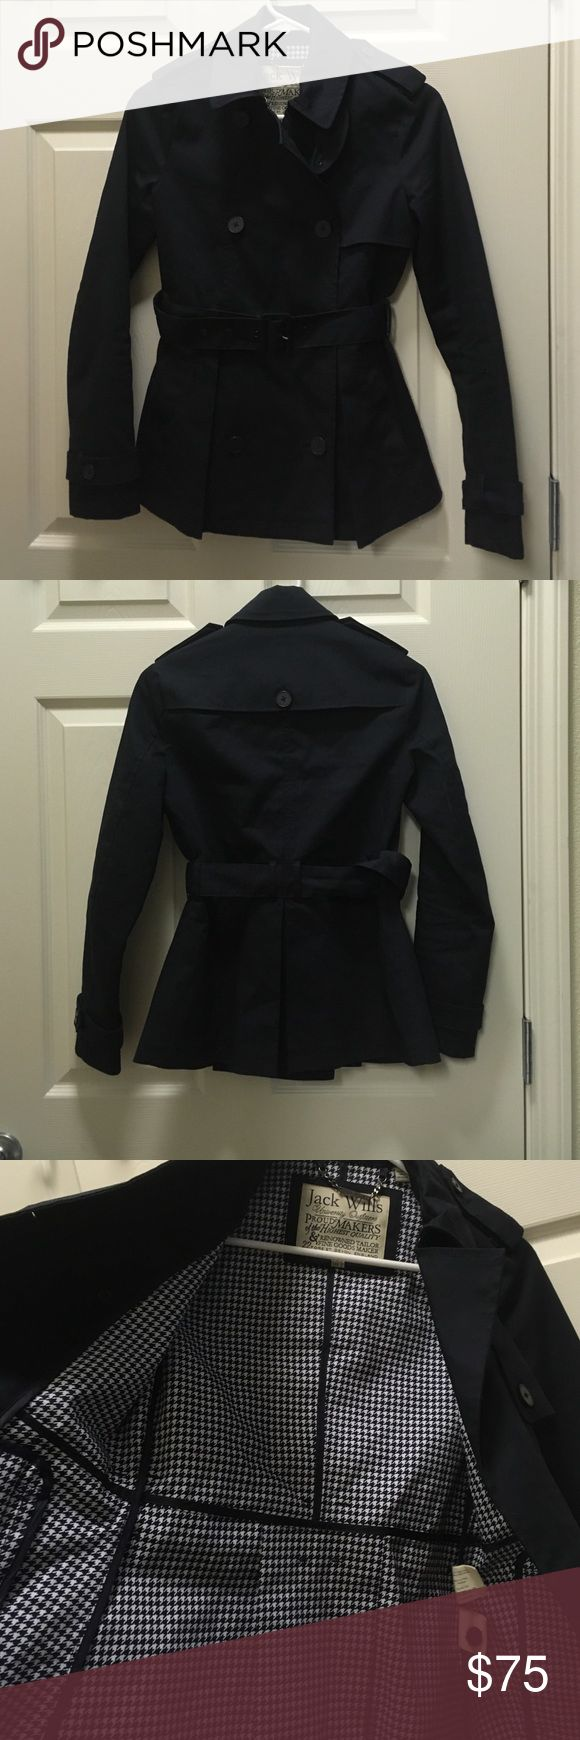 Jack Wills Short Trench Coat + backpack 🎒 Navy blue. US2. EUC. Free Jack Wills backpack with purchase. Jack Wills Jackets & Coats Trench Coats